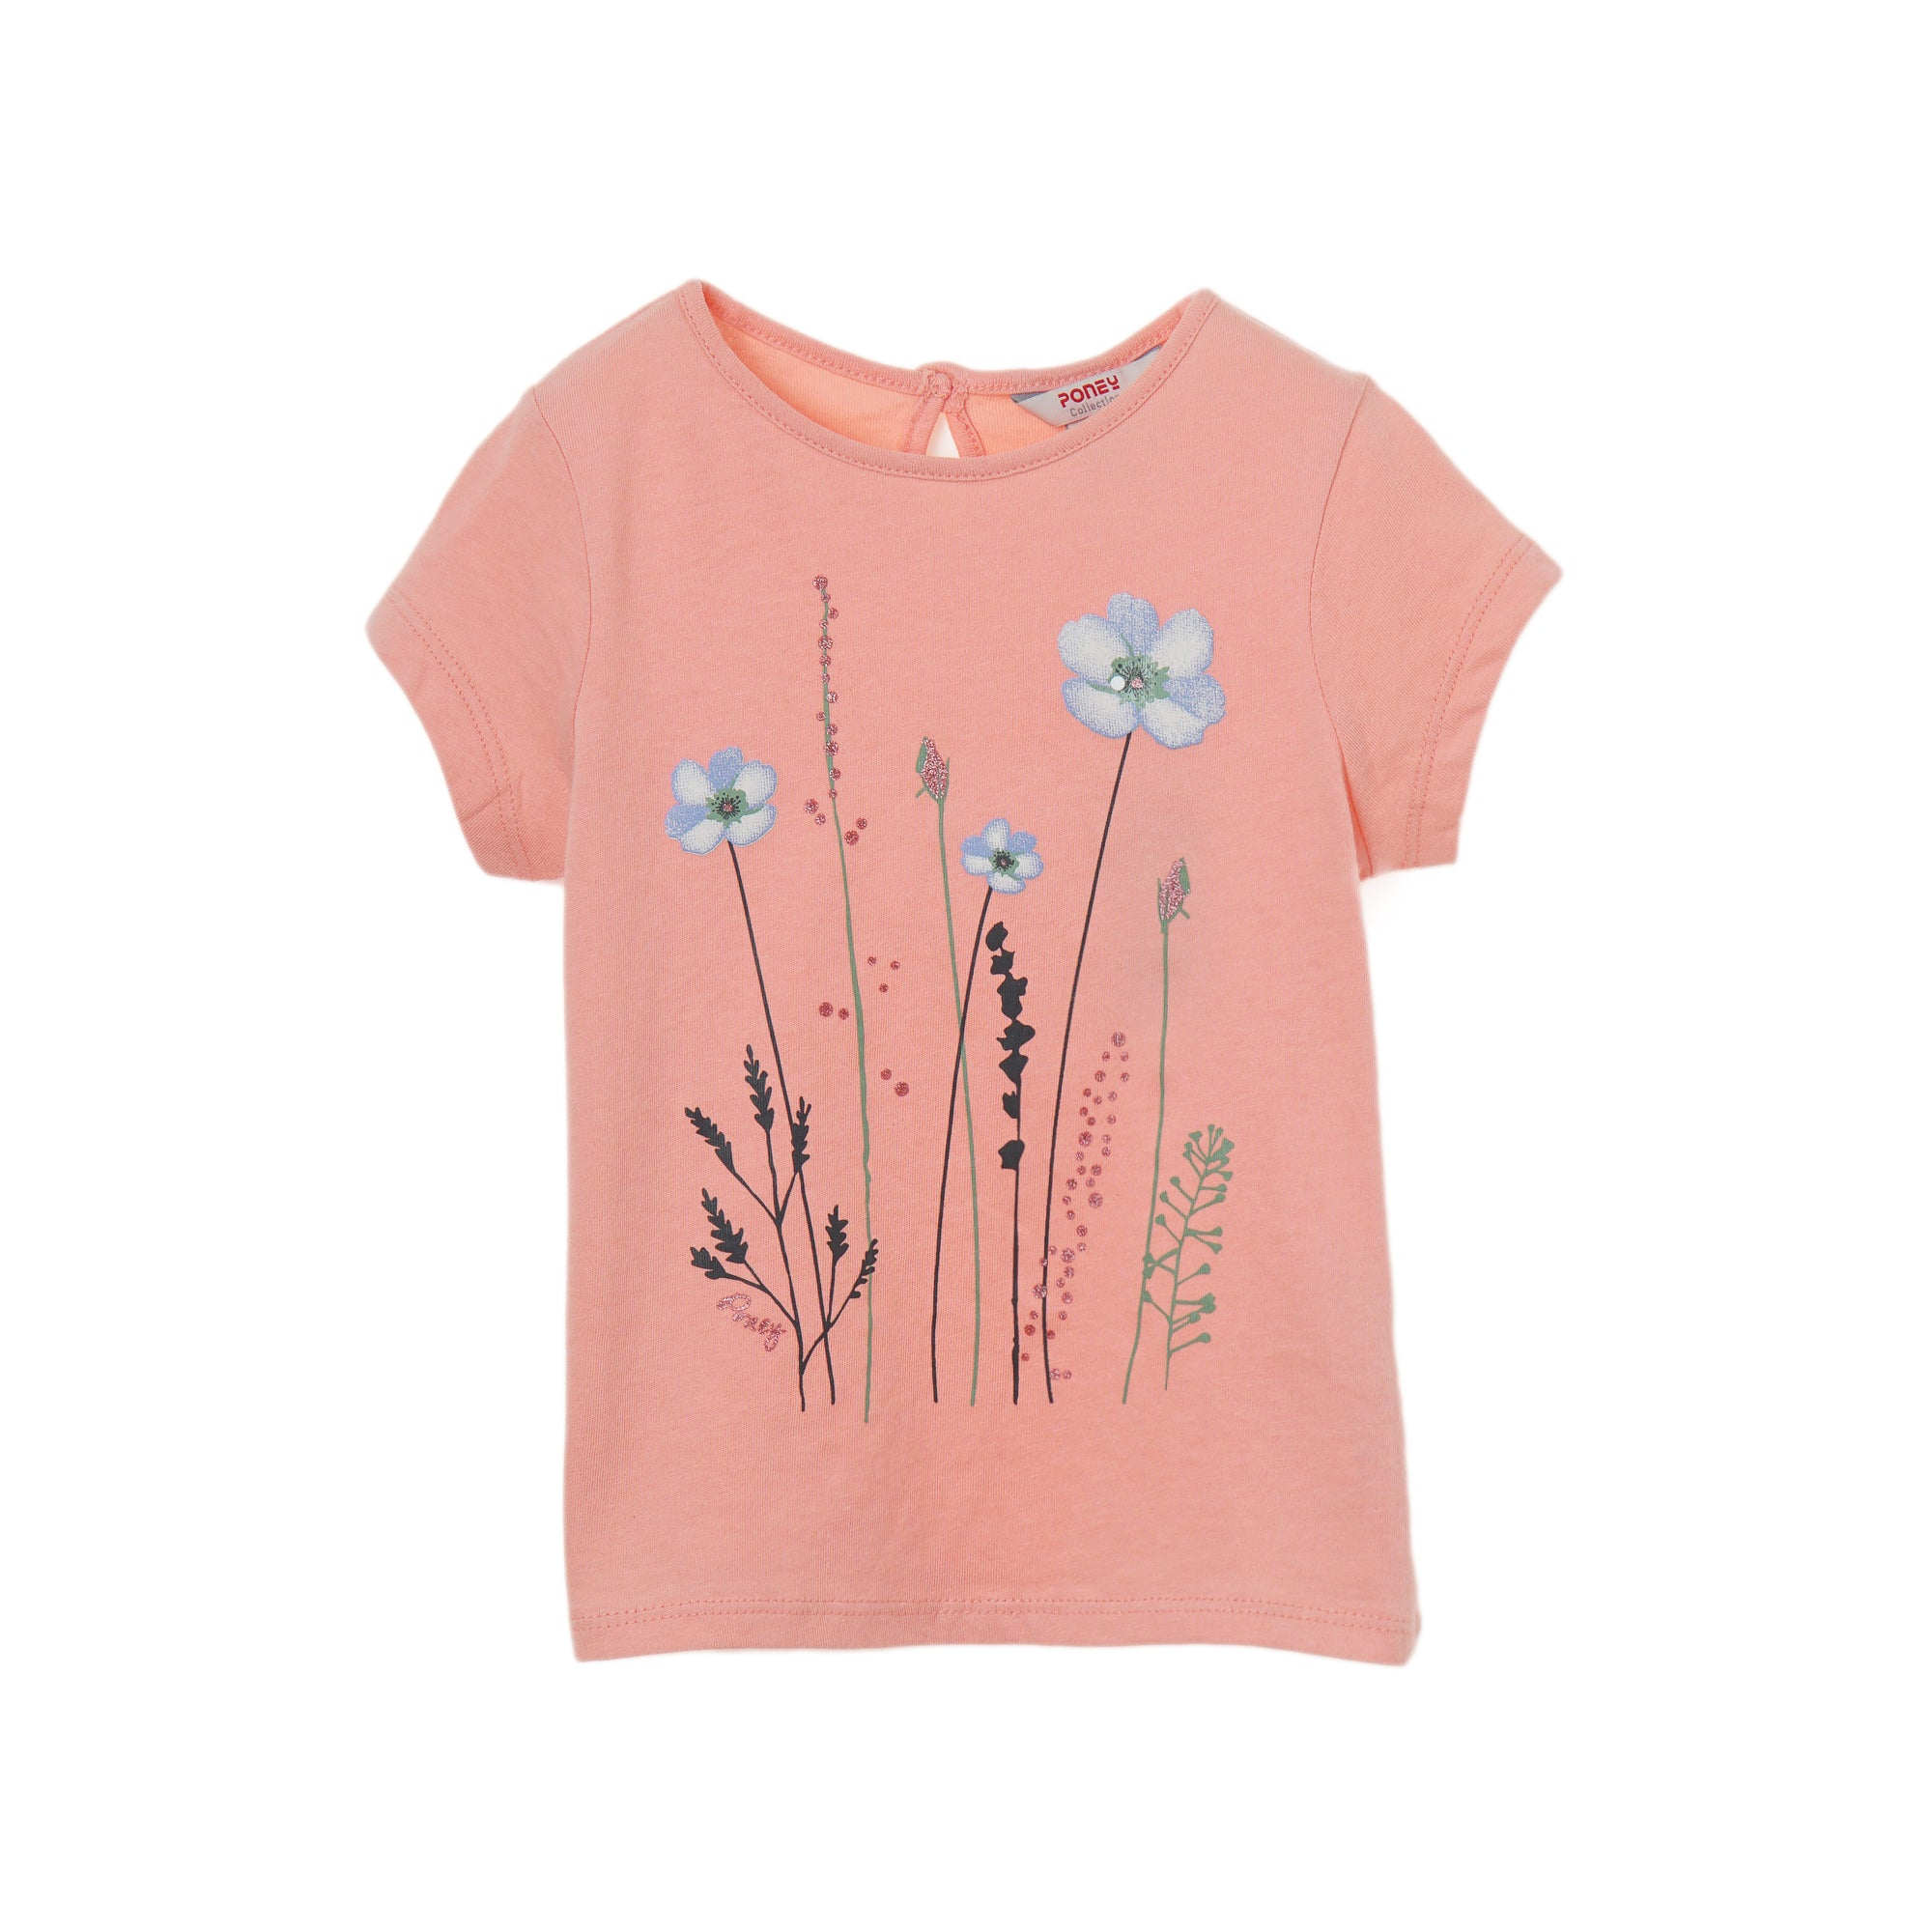 Poney Girls ShortSleeve Tee 7993 (6mths-12yrs)